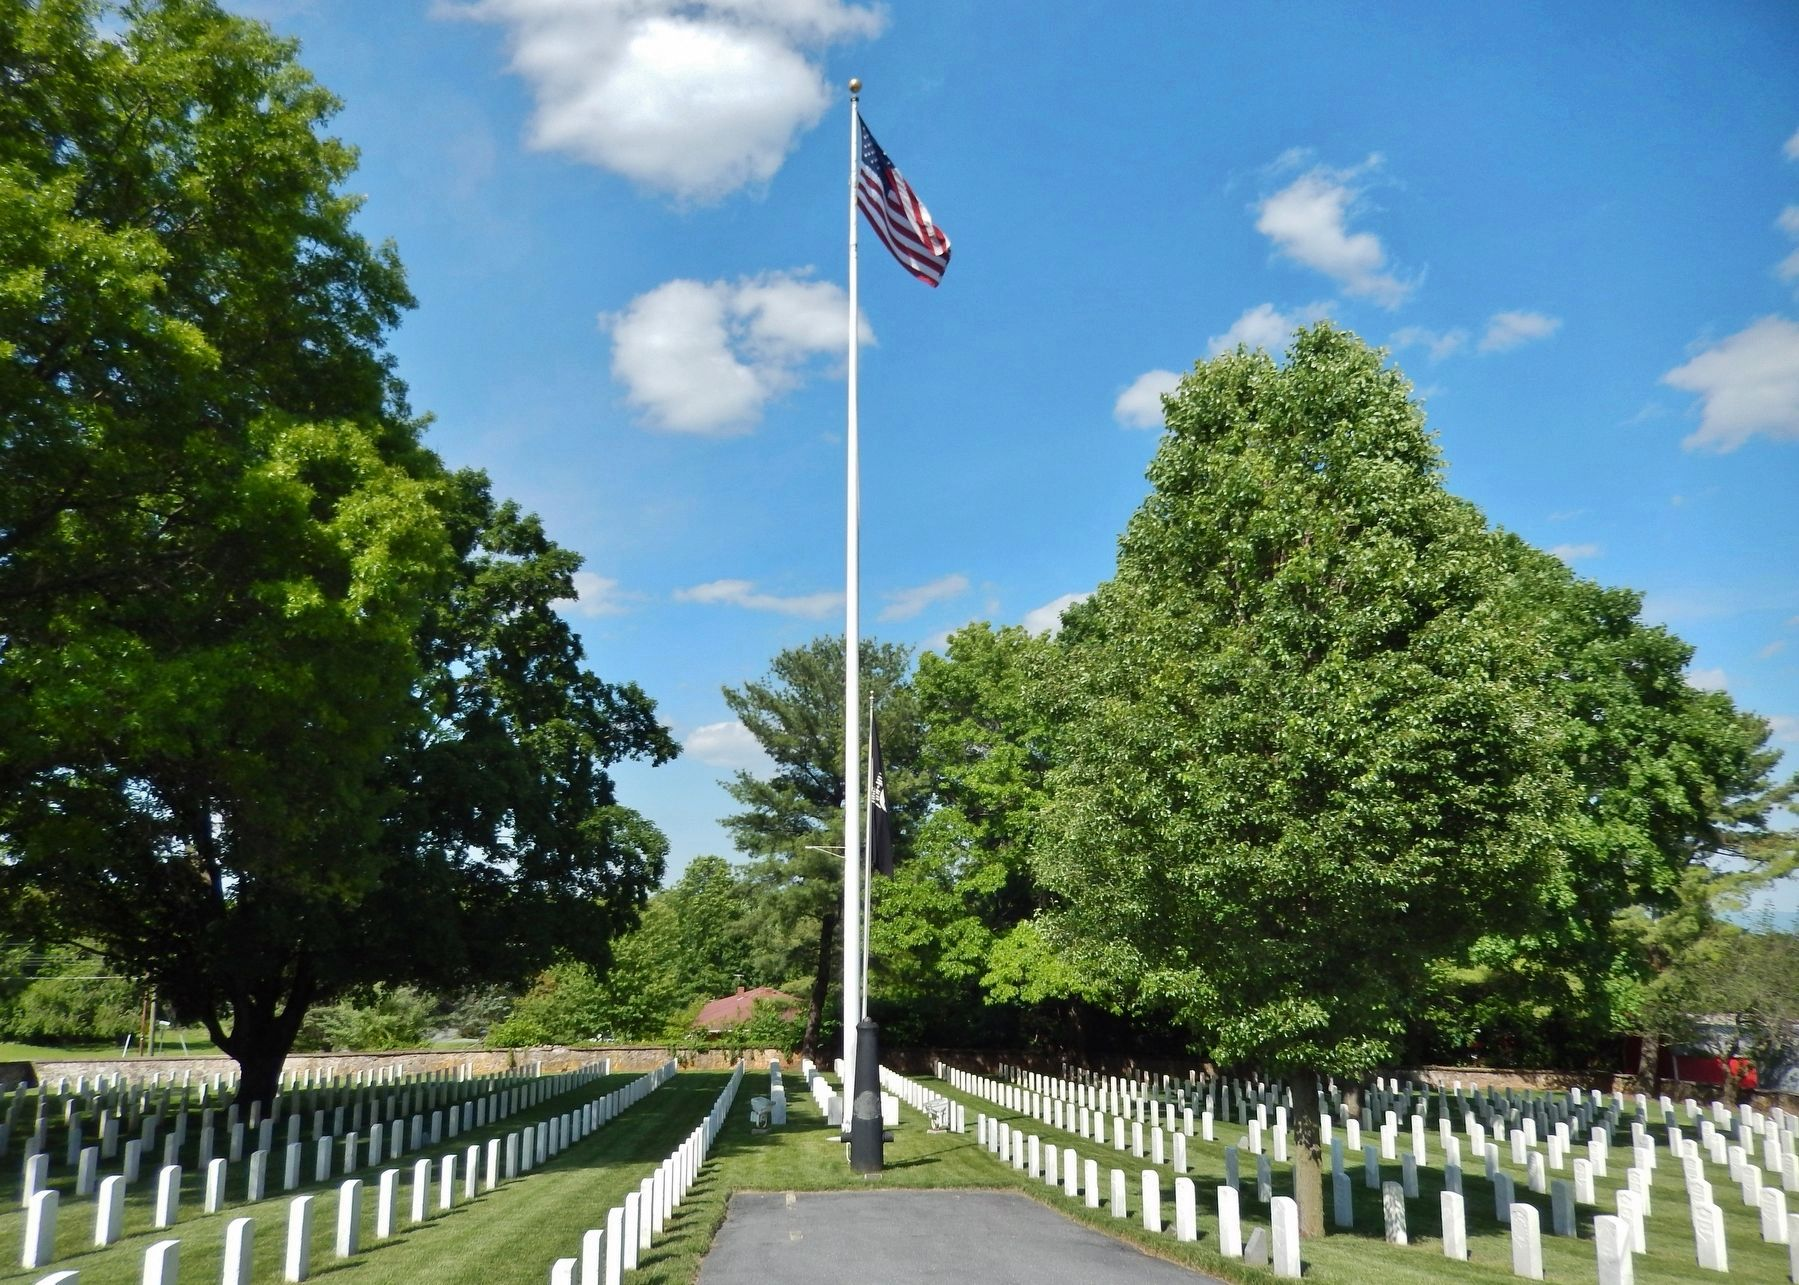 Staunton National Cemetery Flagstaff (<i>at center of cemetery • view from near marker</i>) image. Click for full size.